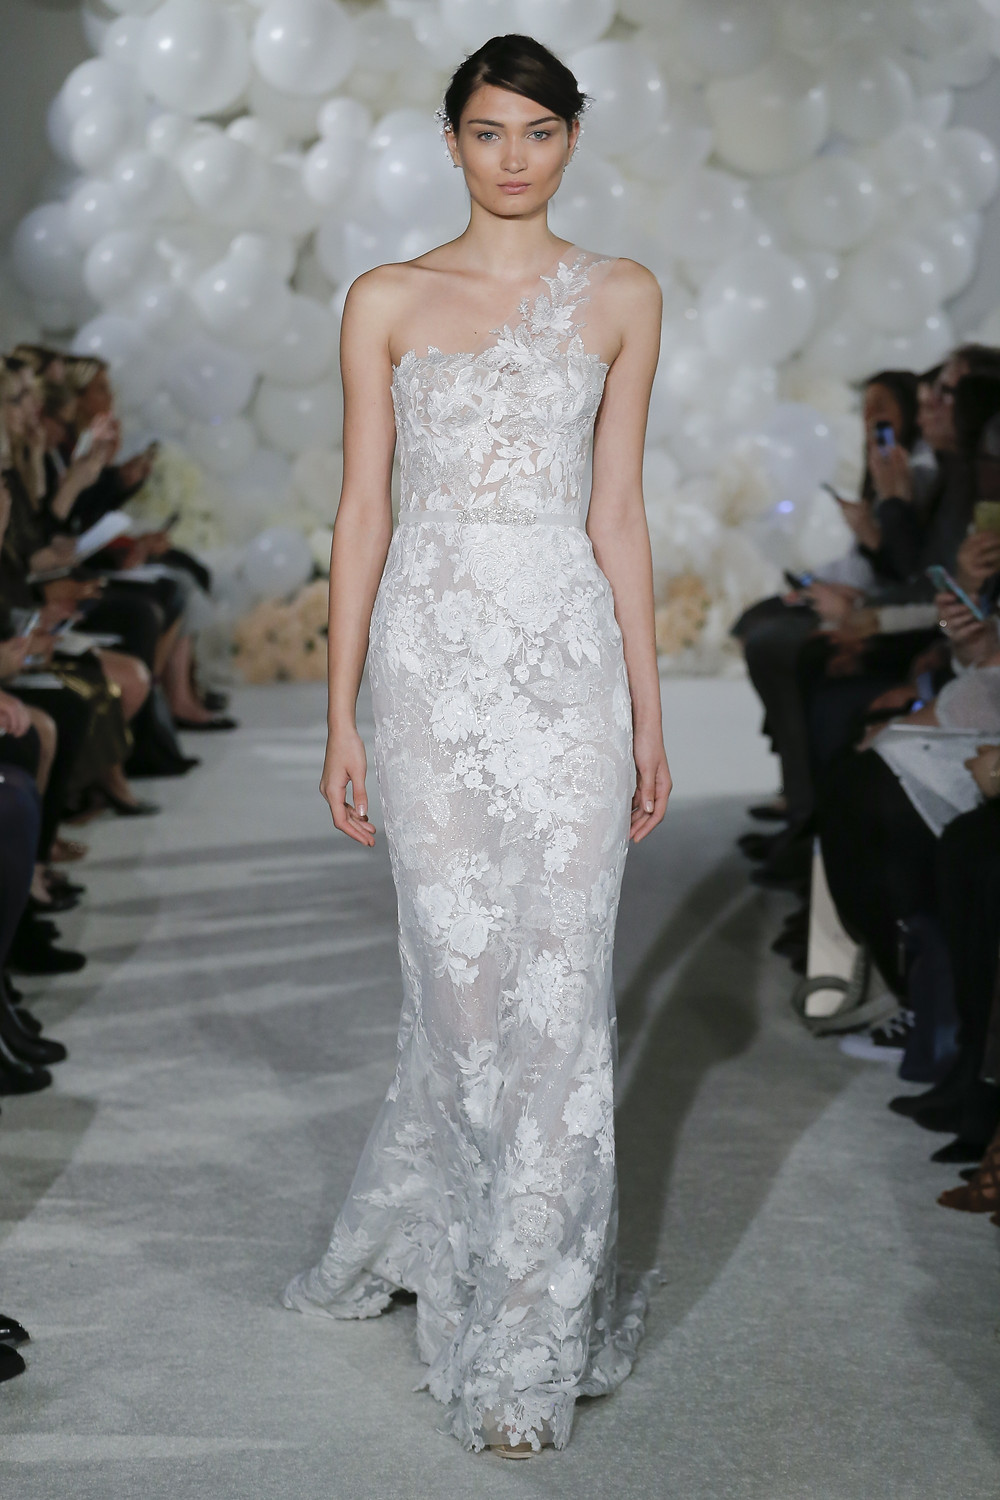 A Mira Zwillinger one shoulder sheath wedding dress with floral print and embellishments